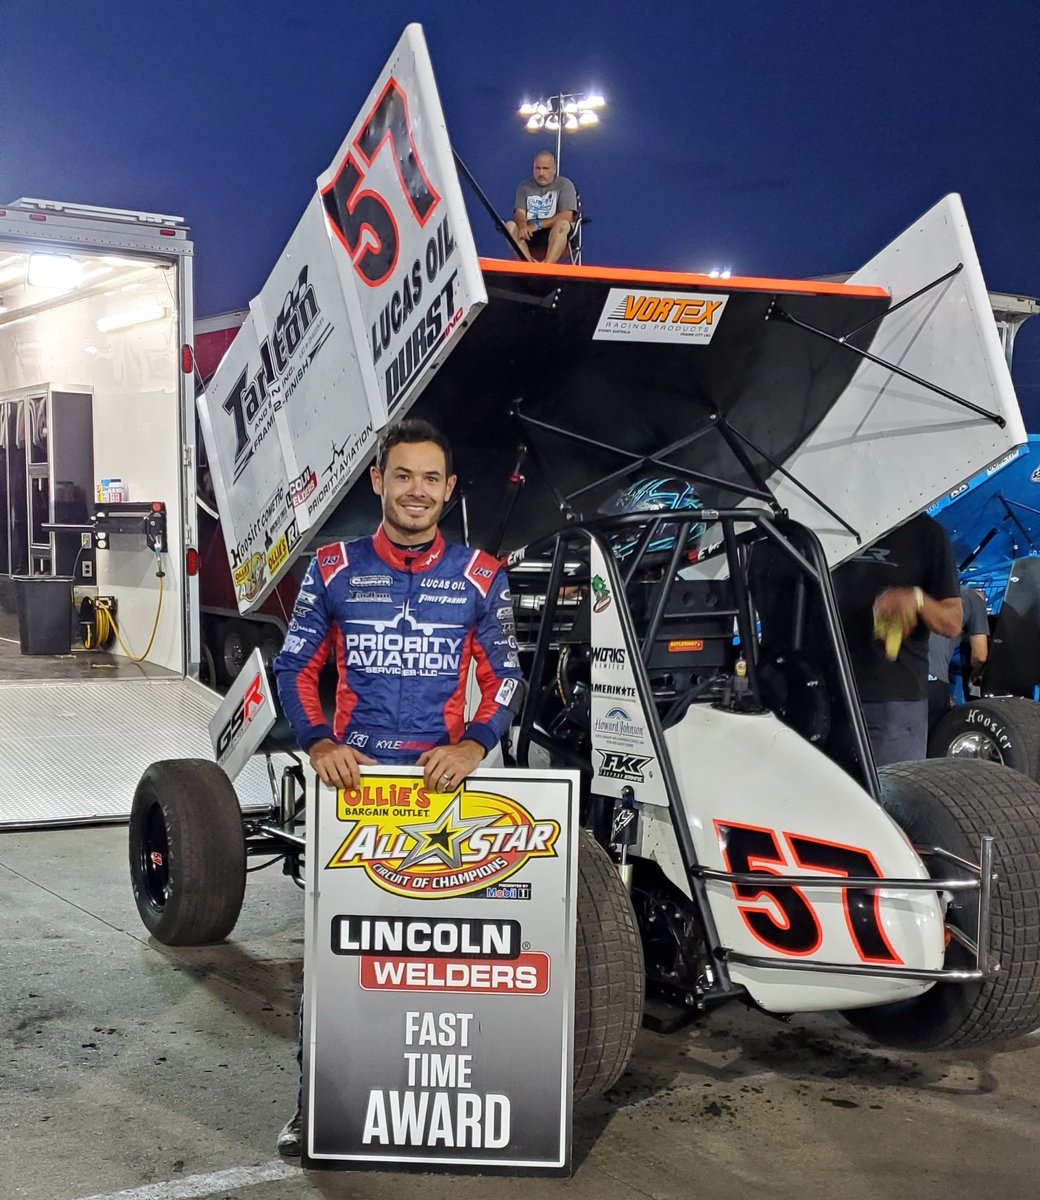 Kyle Larson earns the @LincolnElectric Fast Time Award at @knoxvilleraces with a lap time of 15.216! #OlliesAllStars